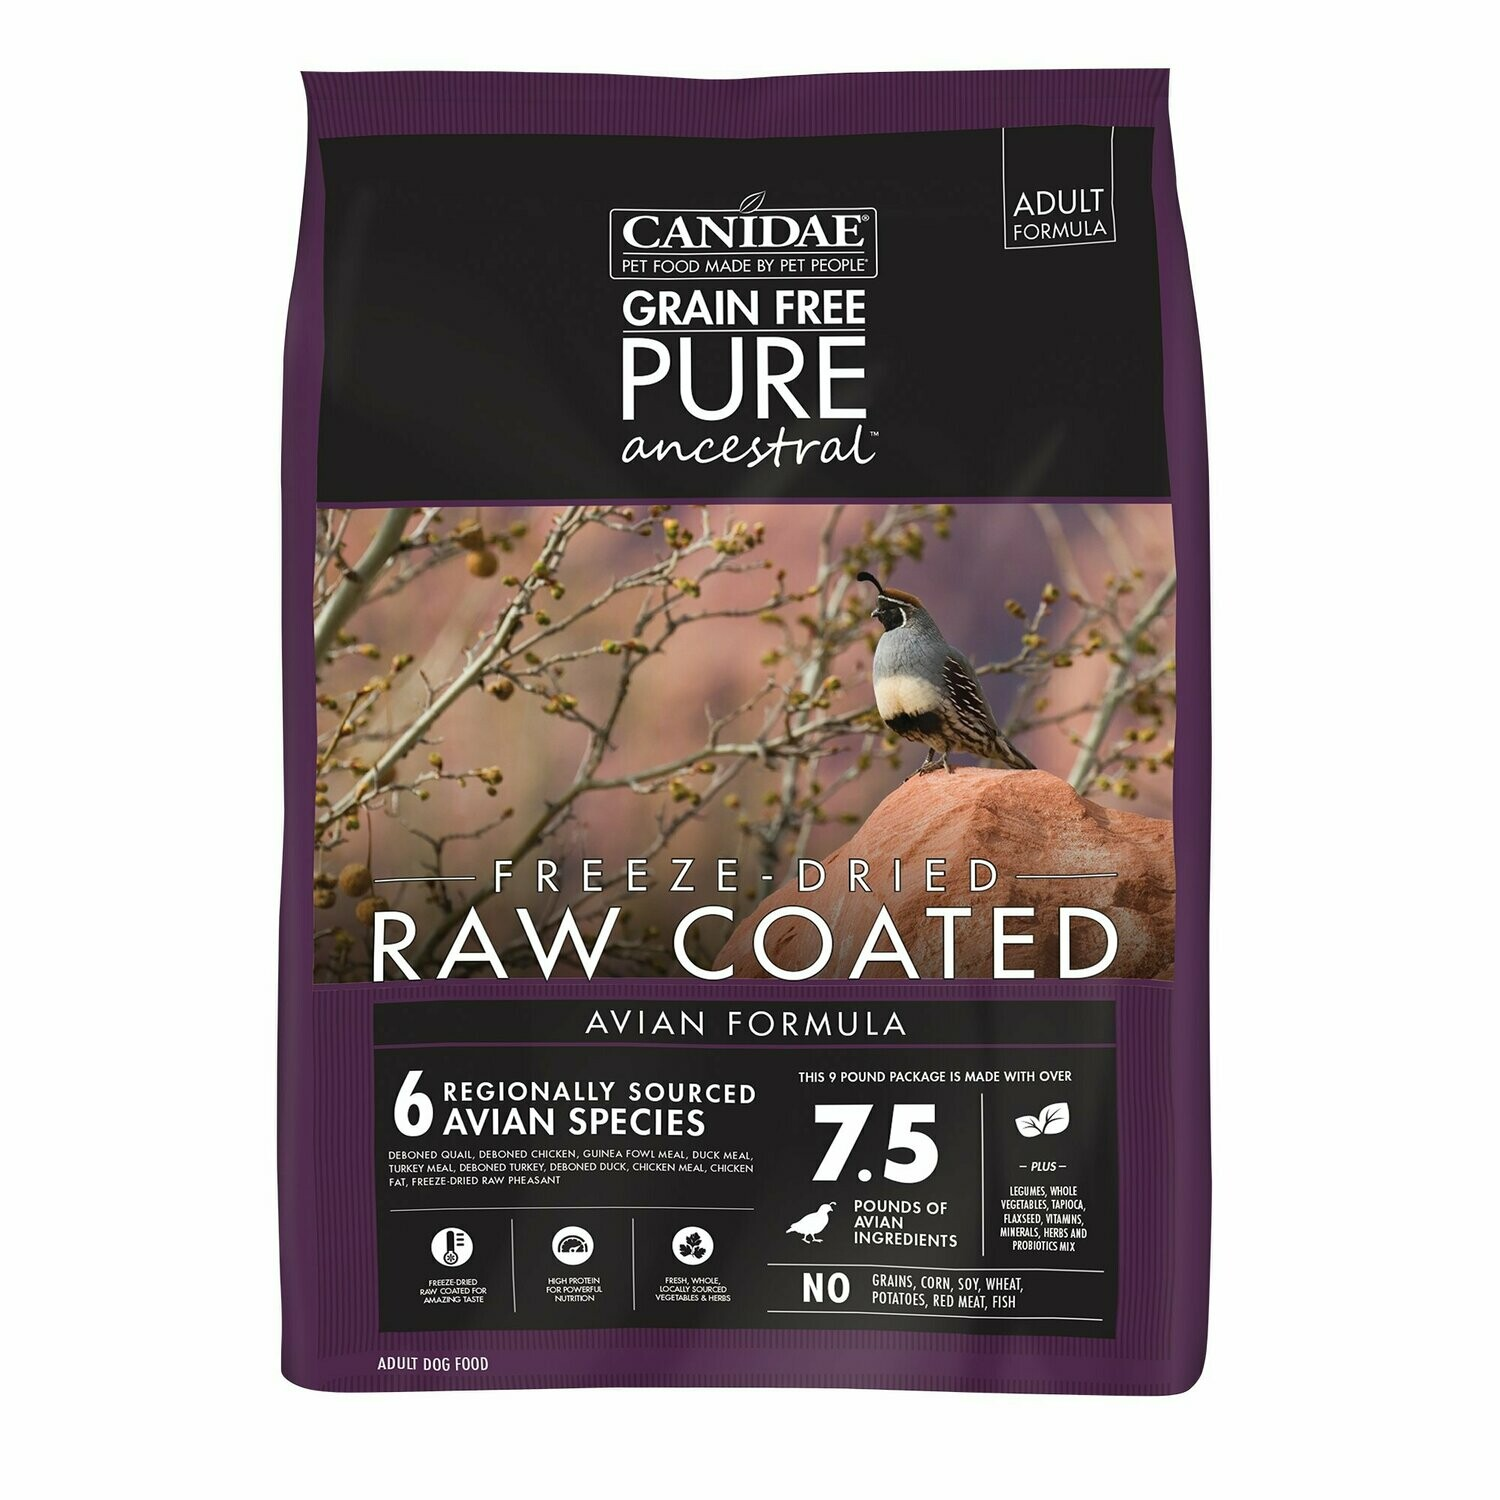 Canidae Pure Ancestral Raw Coated Avian Chicken, Turkey, Quail Dog Food 9lb